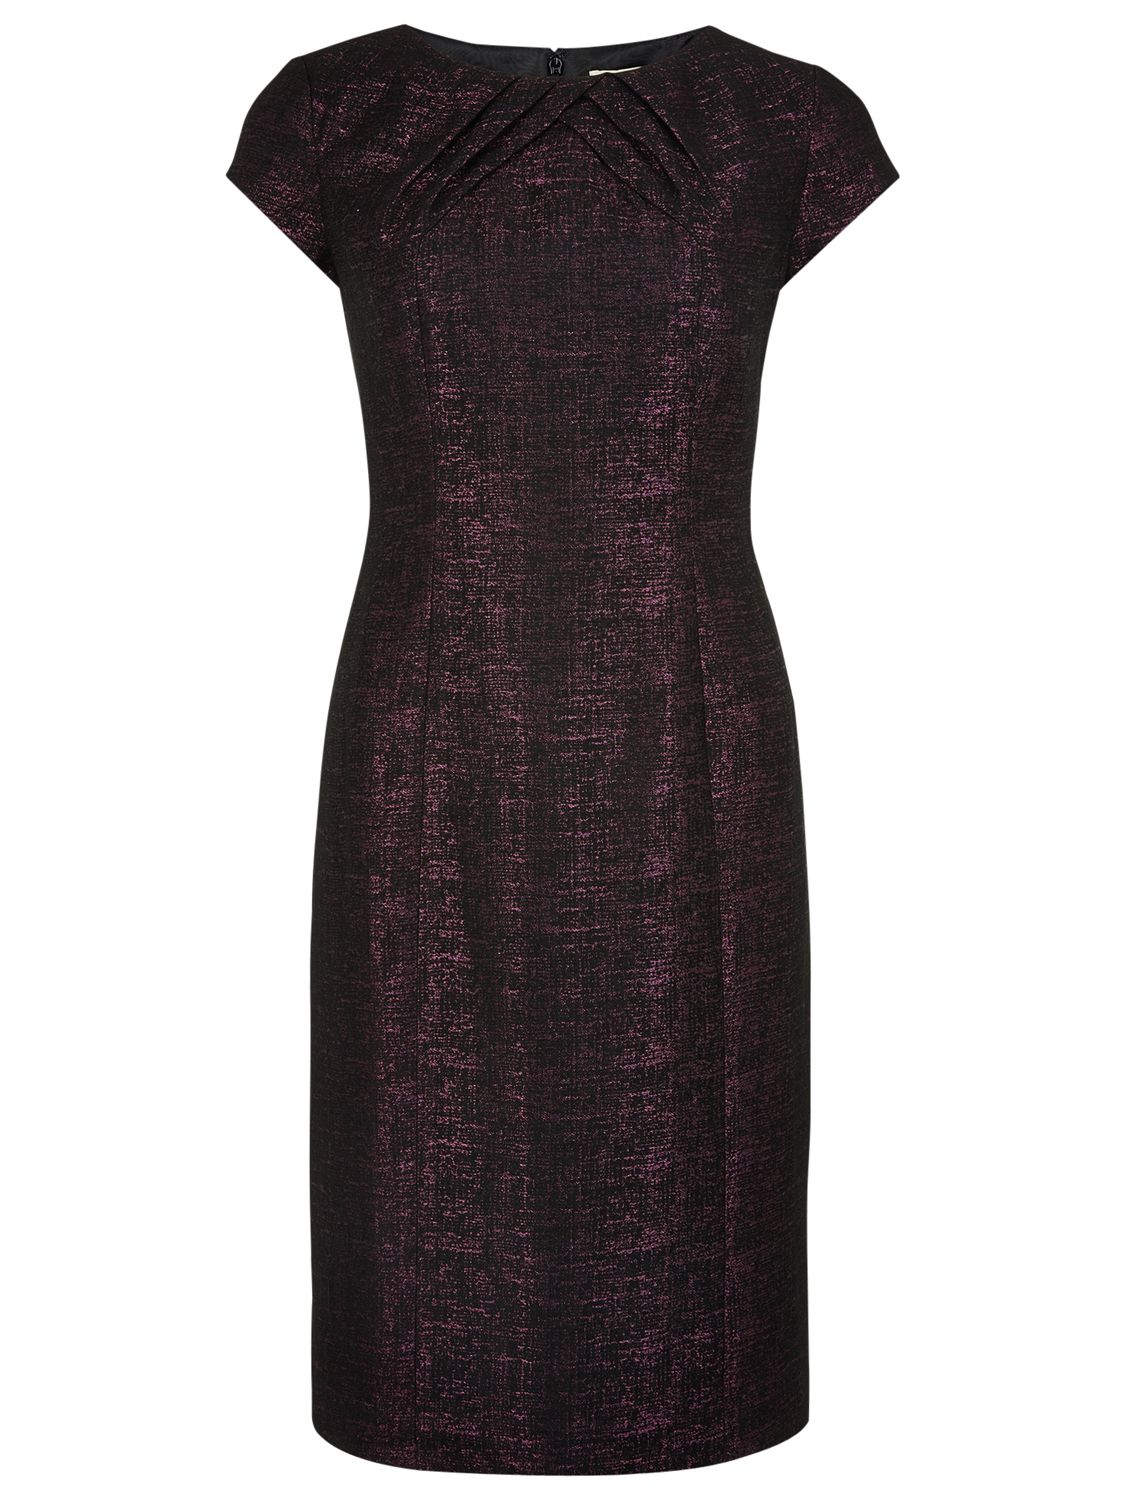 precis petite shift dress berry / black, precis, petite, shift, dress, berry, black, precis petite, clearance, womenswear offers, womens dresses offers, women, inactive womenswear, new reductions, womens dresses, special offers, workwear offers, 1707439